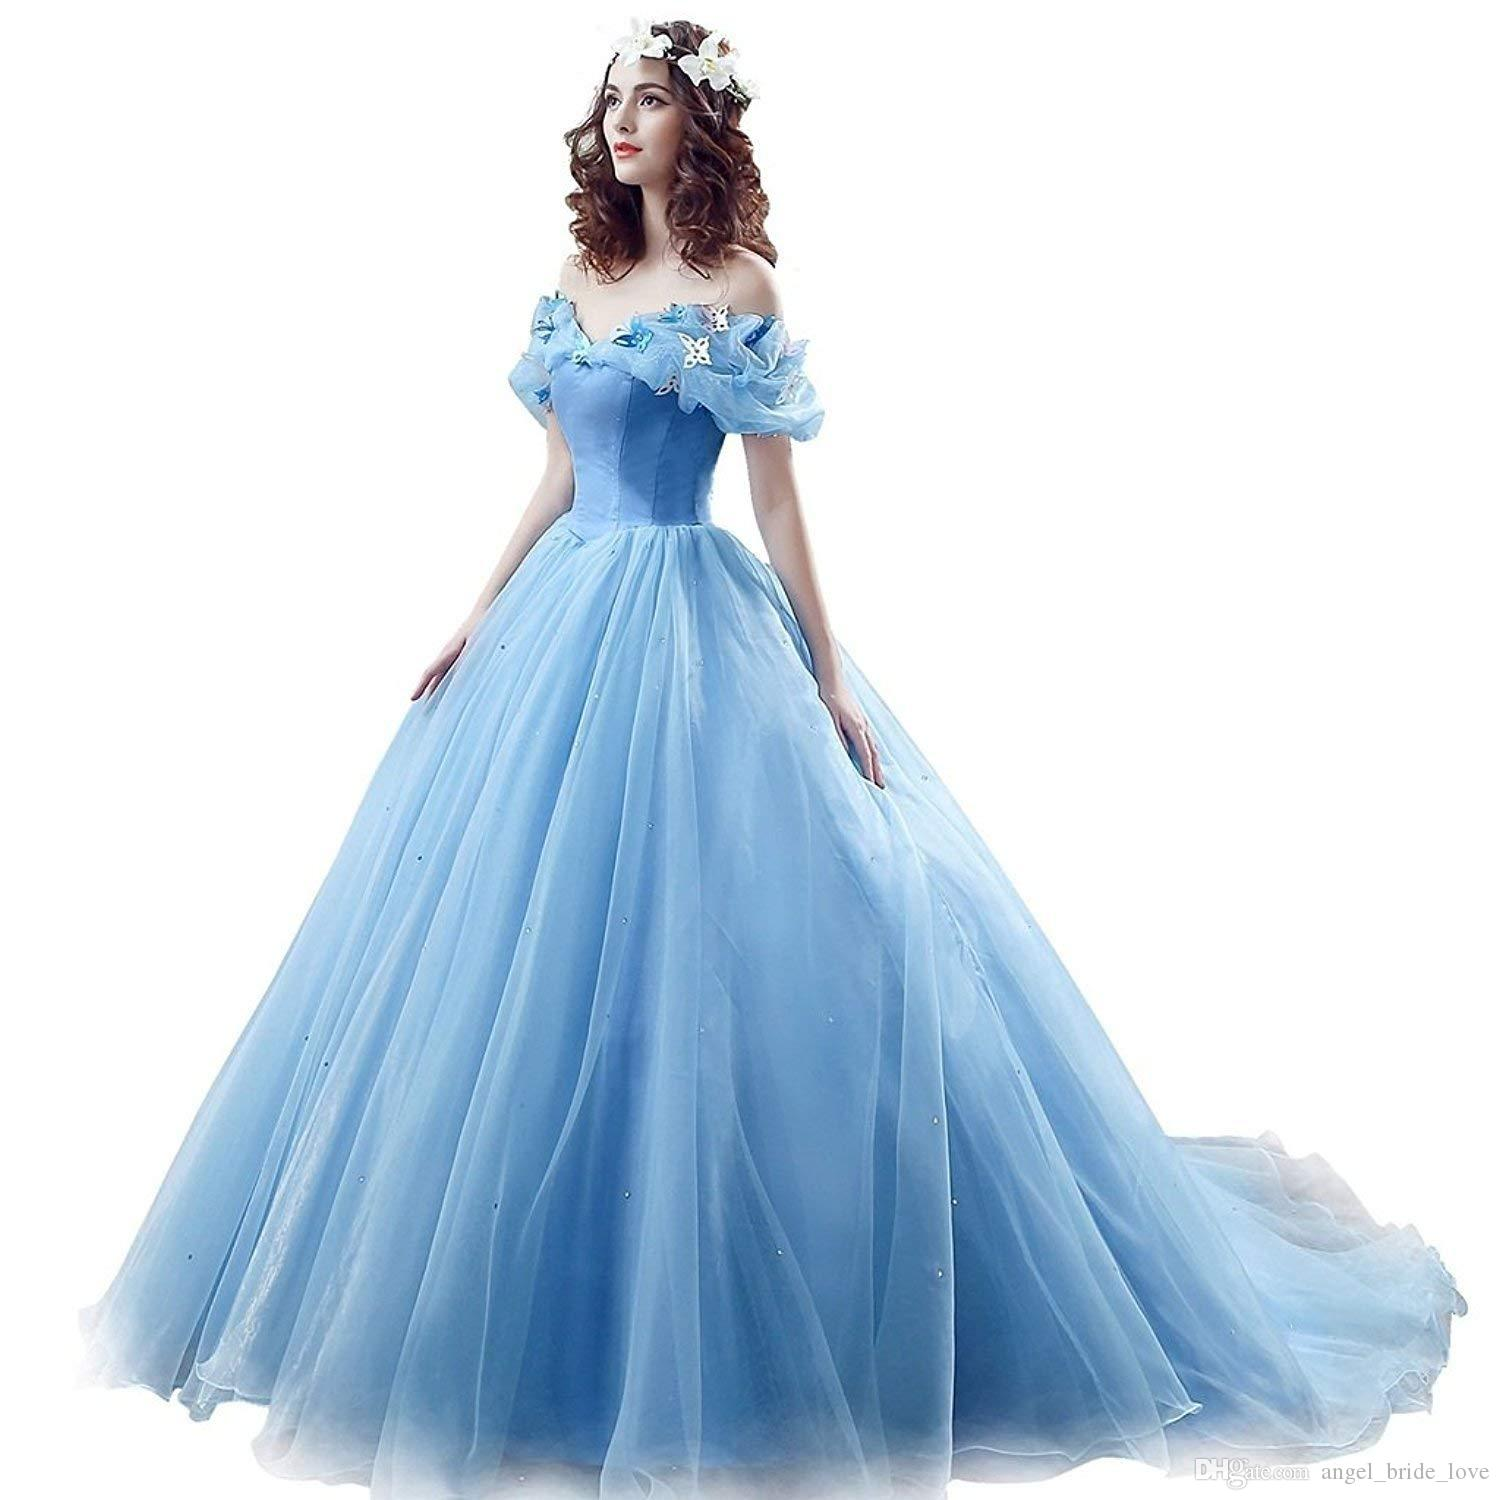 e1a0d43a7b3 2019 Newest Cinderella Quinceanera Dresses With Butterfly Beads Sweet 16  Prom Pageant Debutante Dress Formal Evening Prom Party Gown AL15 Quinceanera  ...